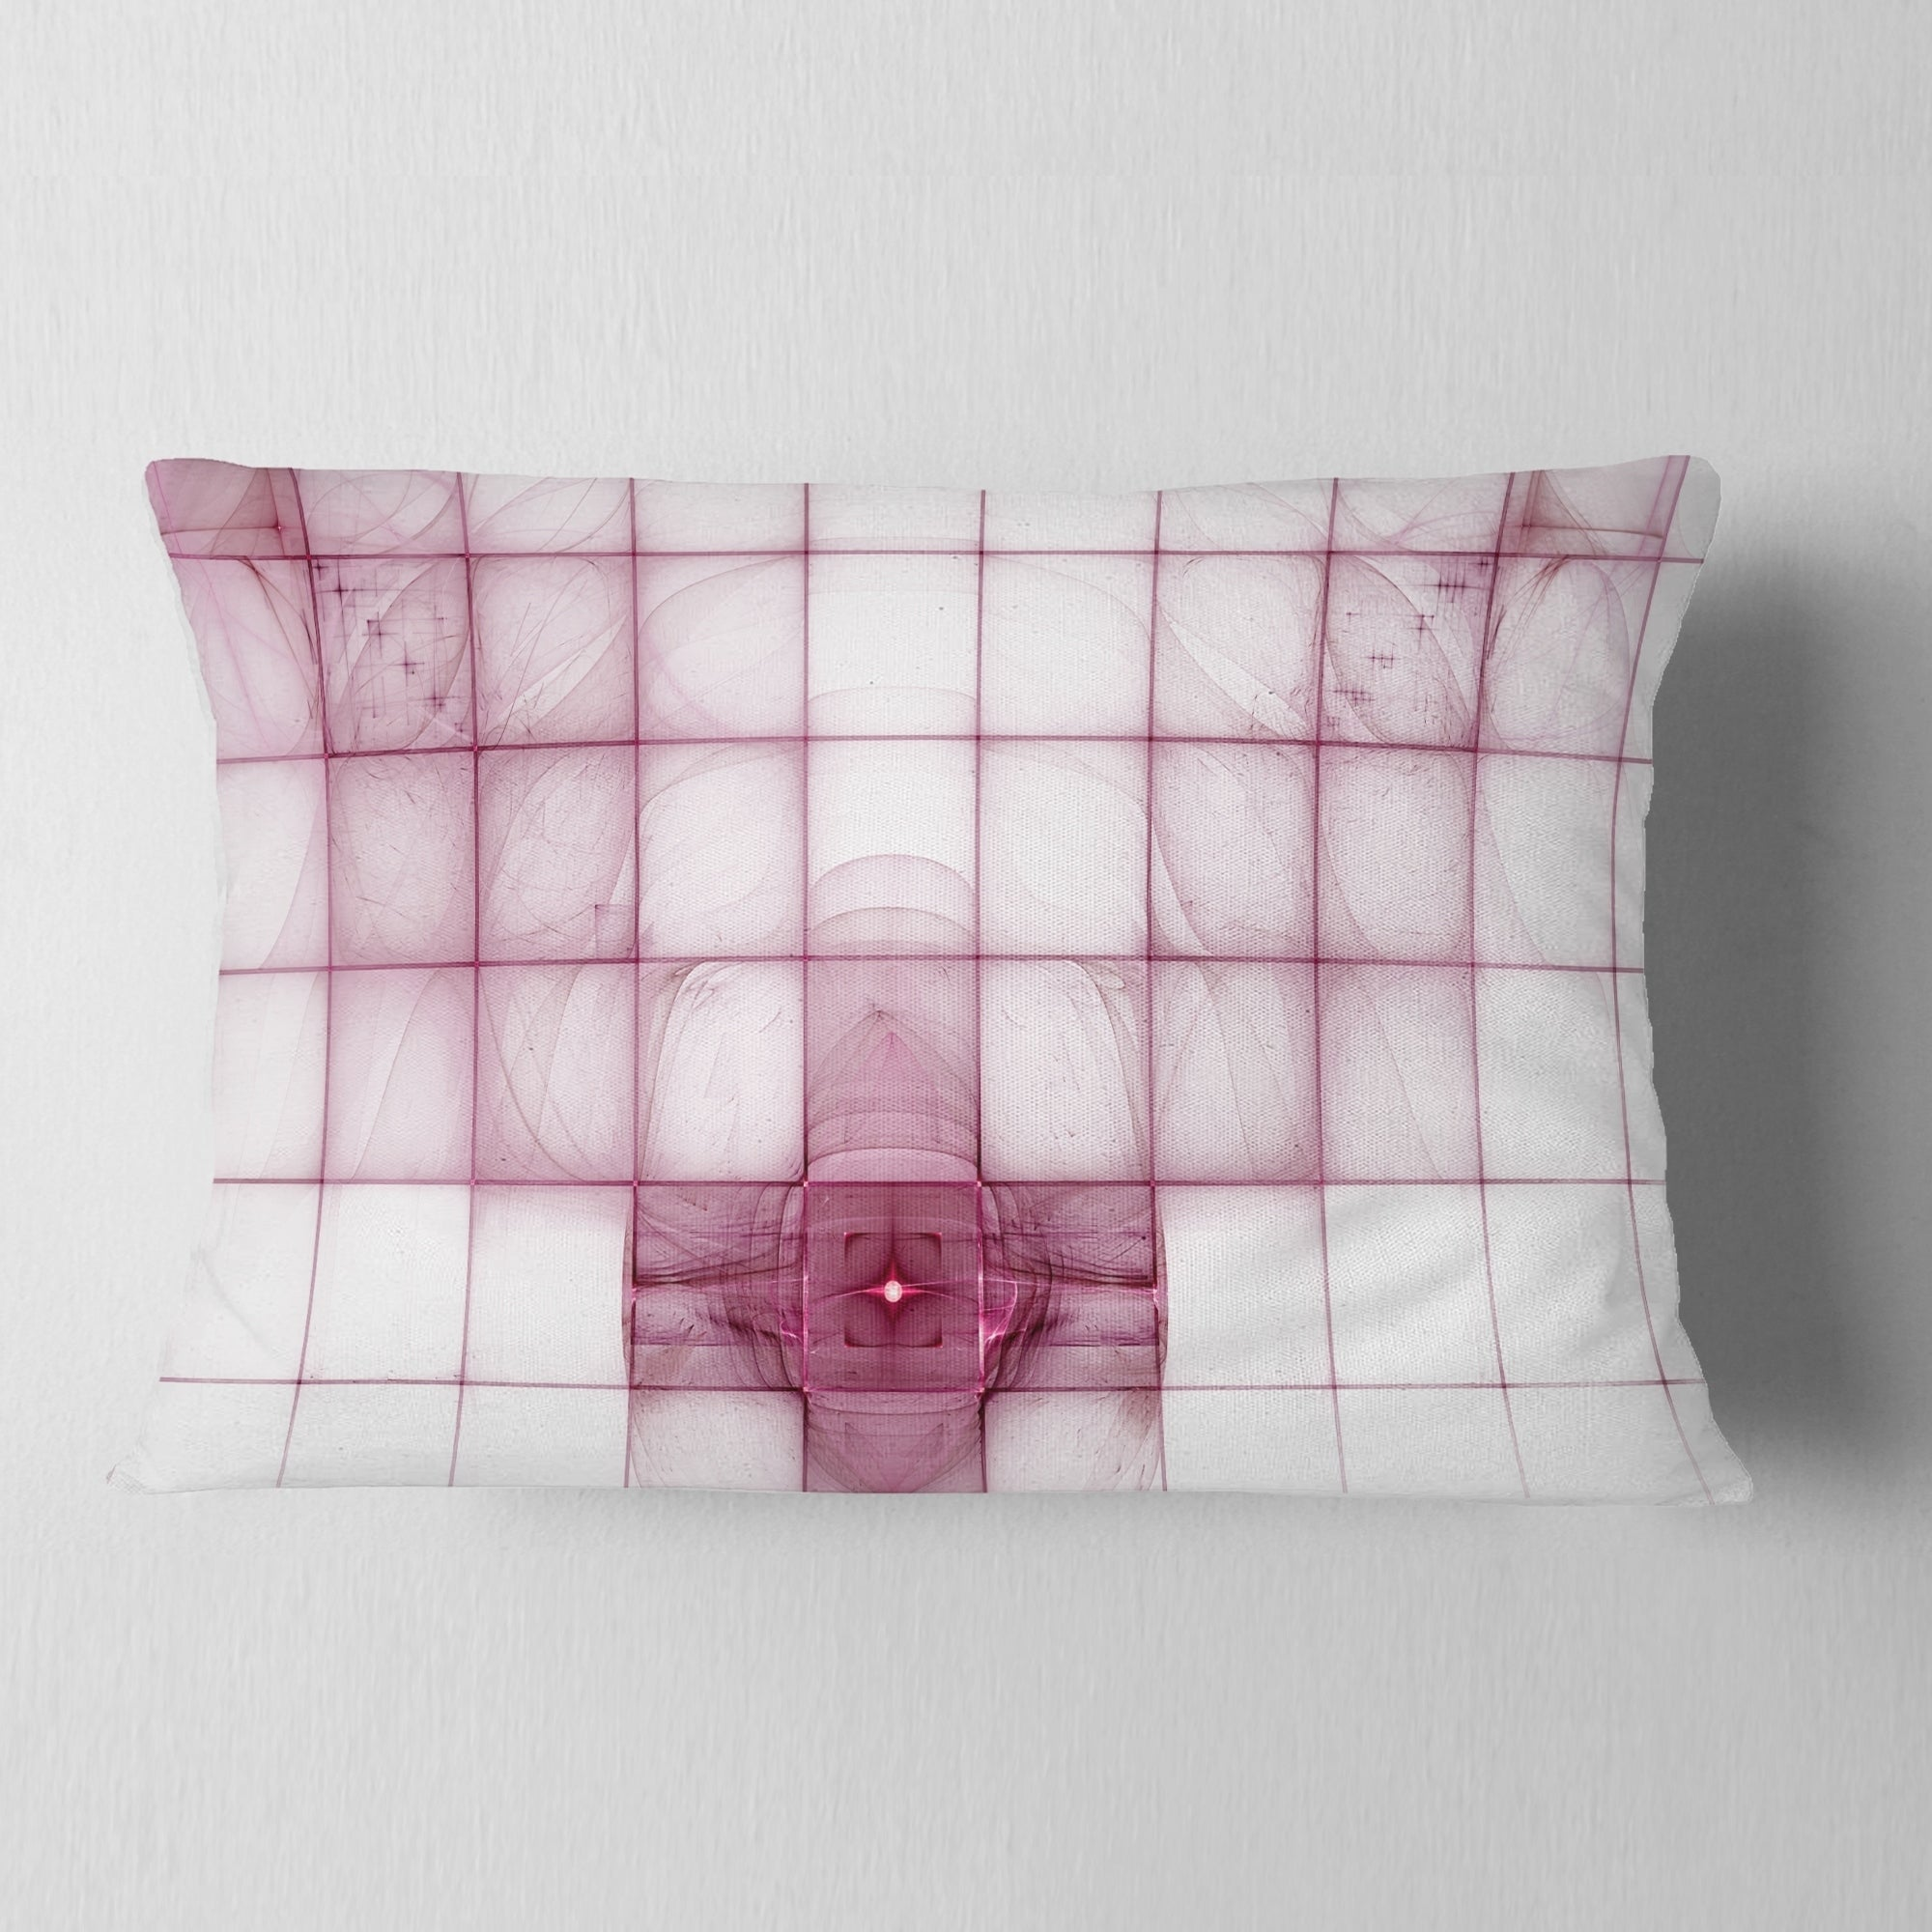 ArtVerse Katelyn Smith 16 x 16 Poly Twill Double Sided Print with Concealed Zipper /& Insert I Loved You Black Heart Pillow